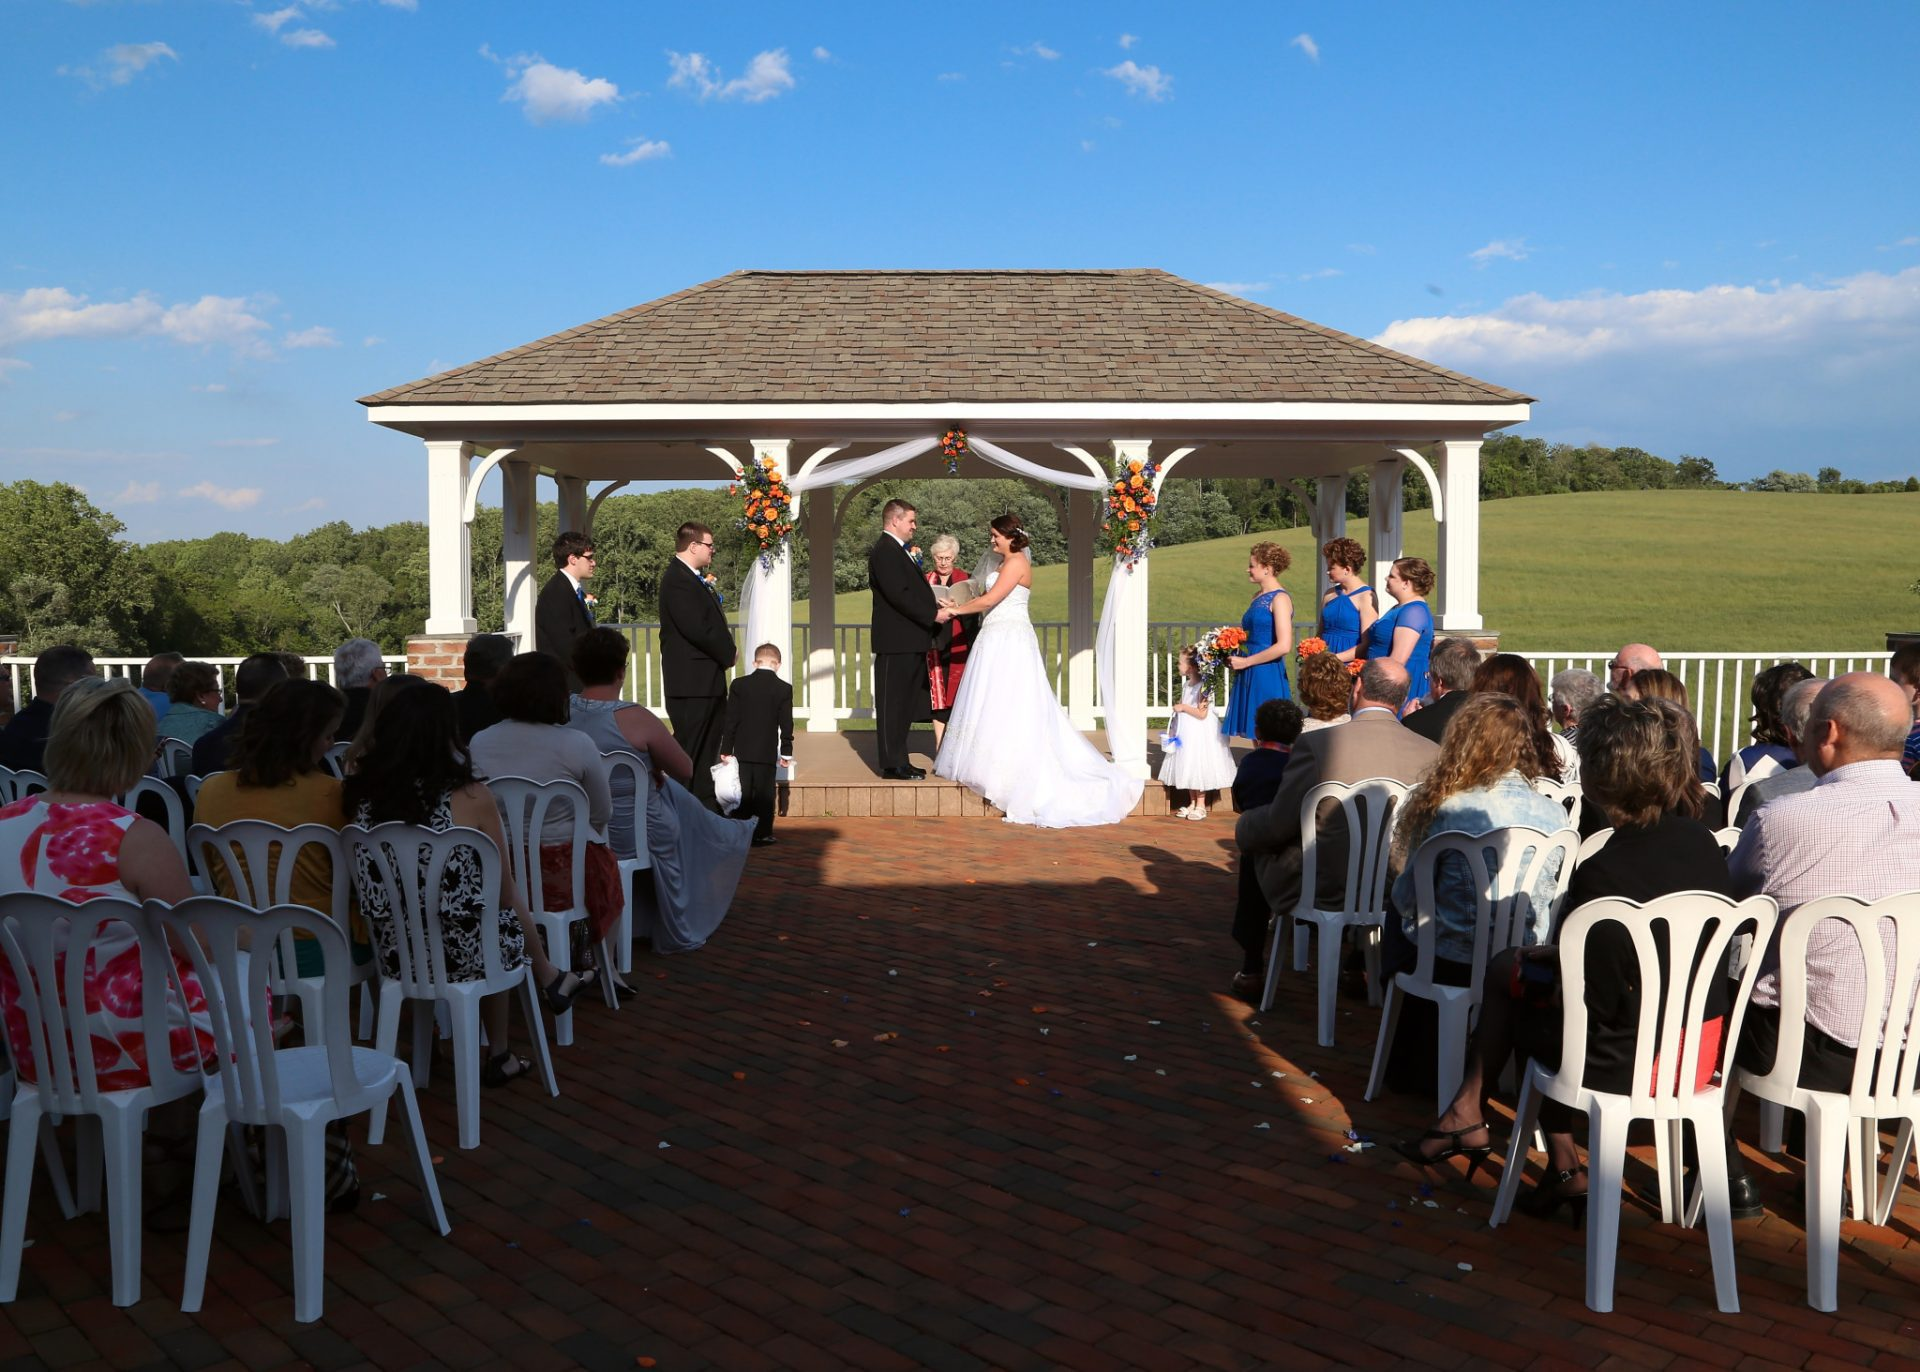 Outdoor wedding in Maryland on brick patio and pavilion